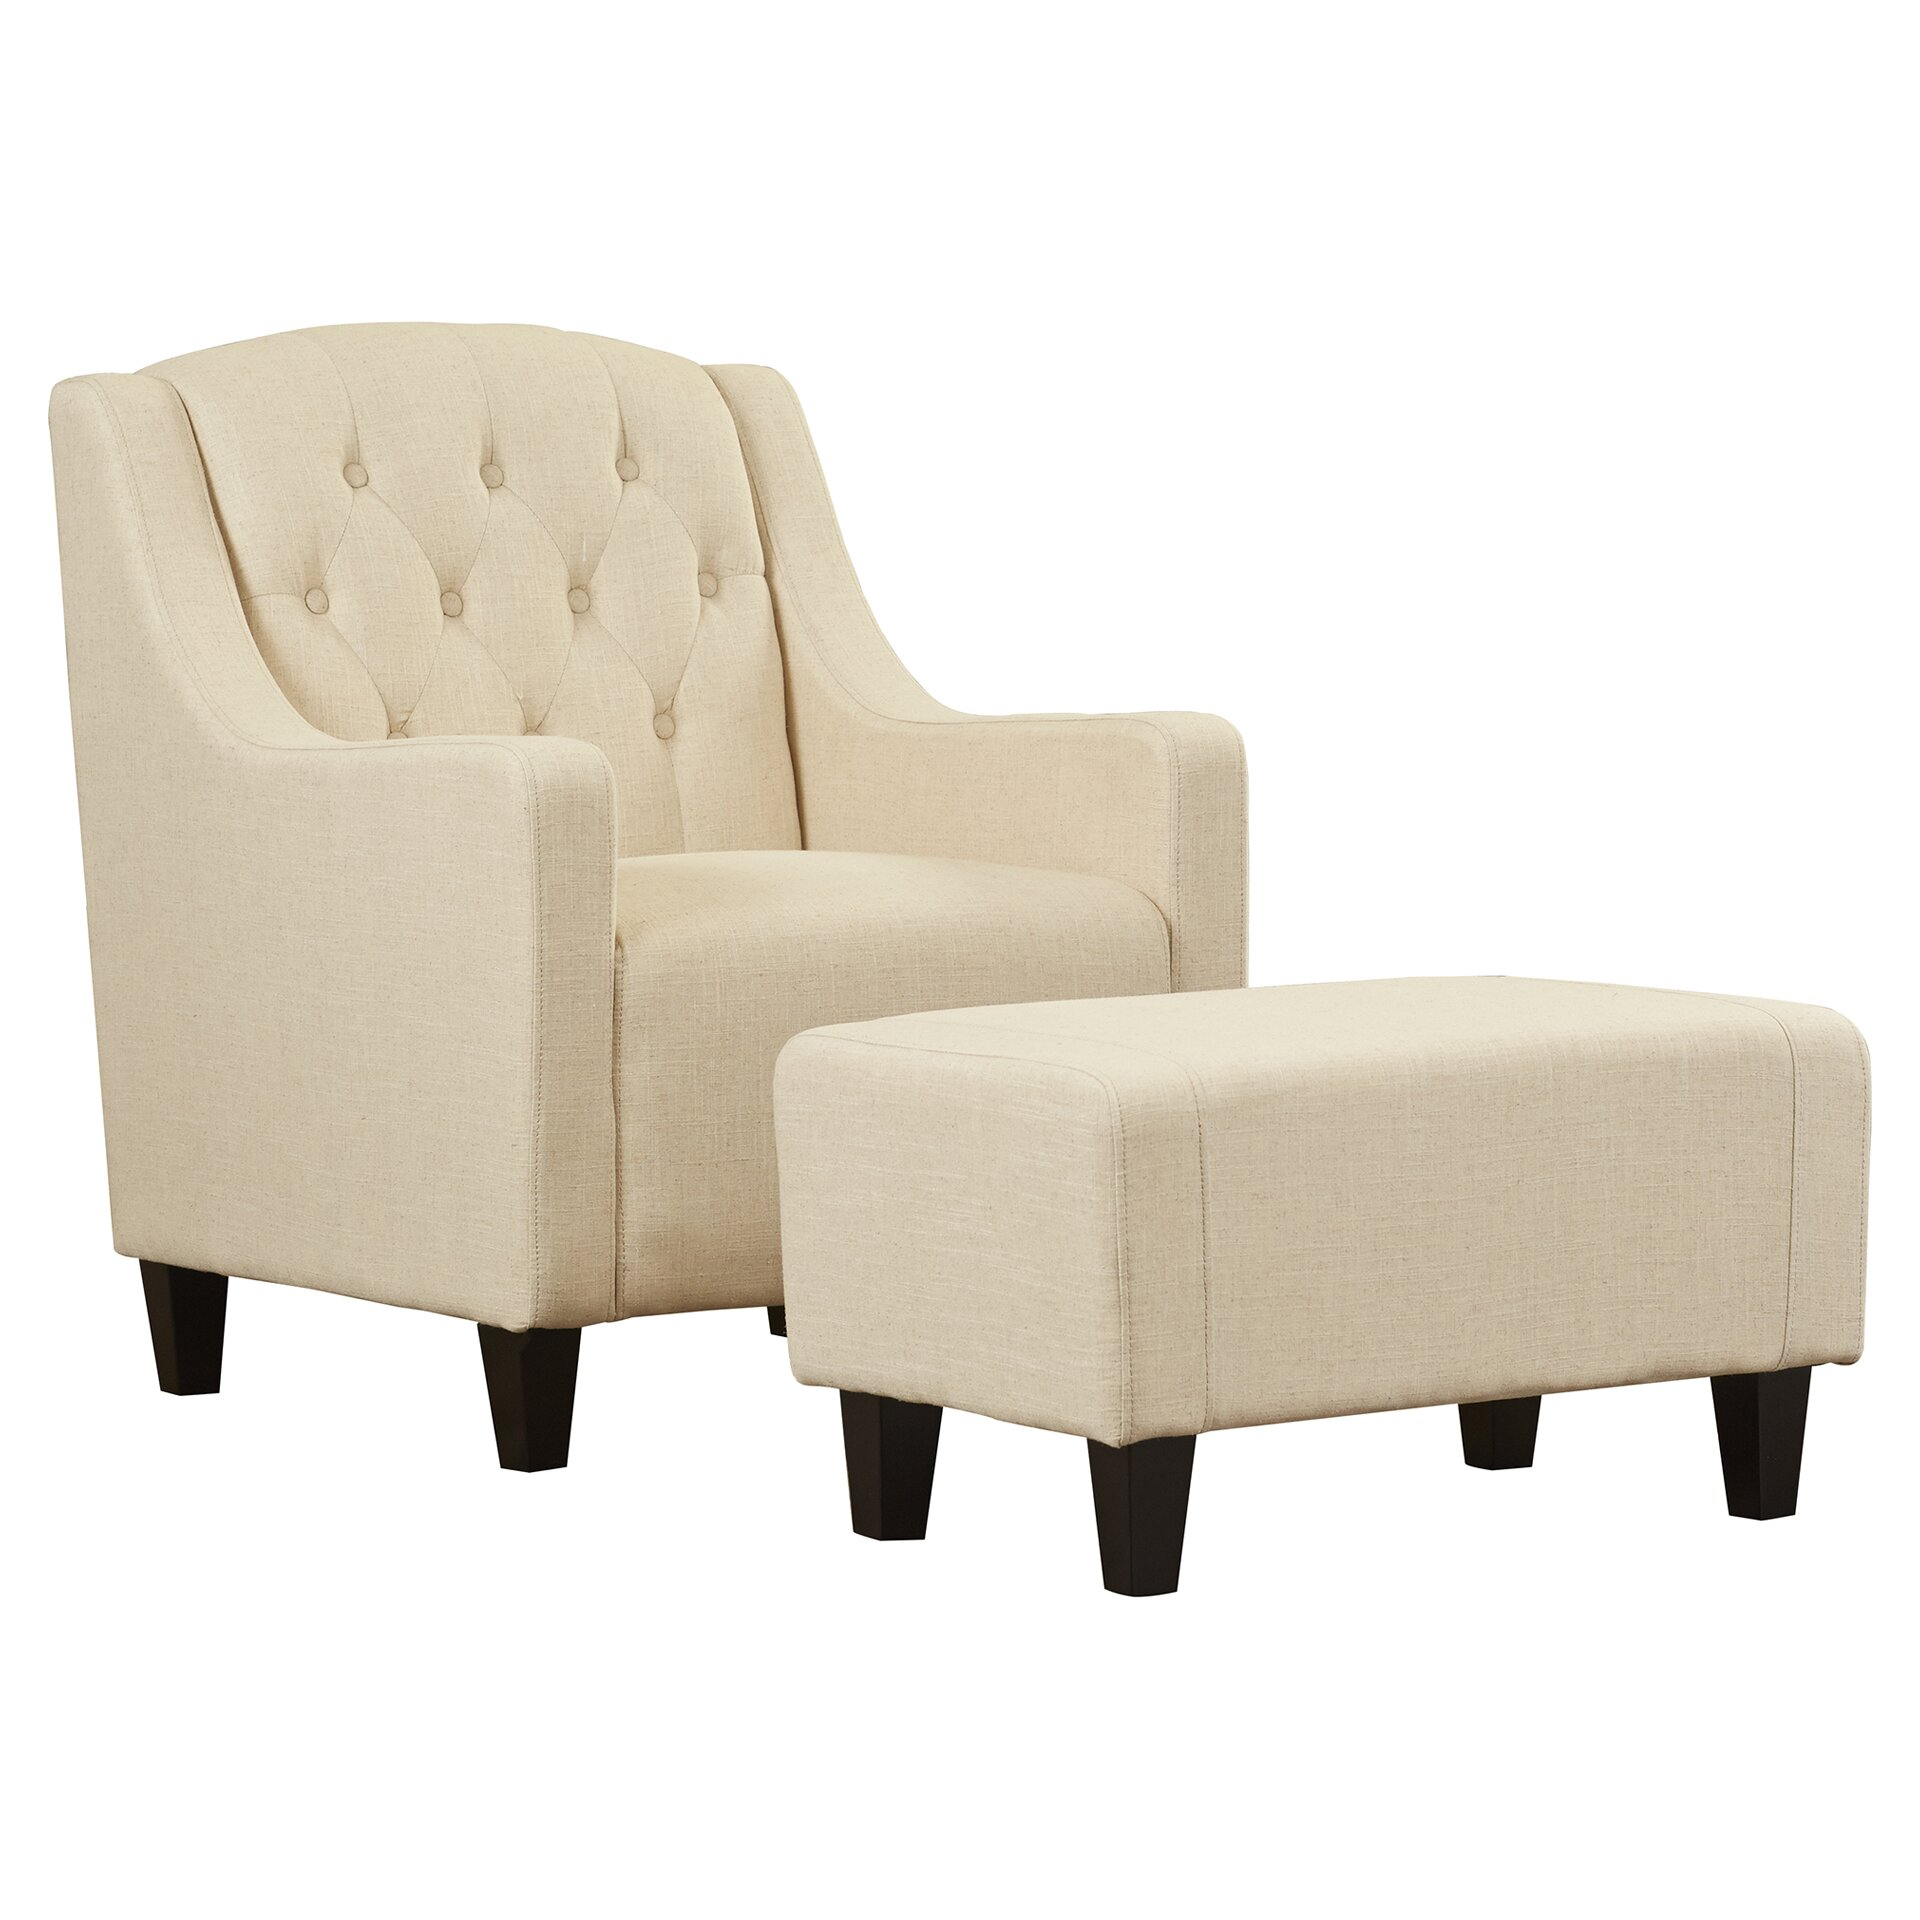 Alcott Hill Bloomington Upholstered Armchair And Ottoman